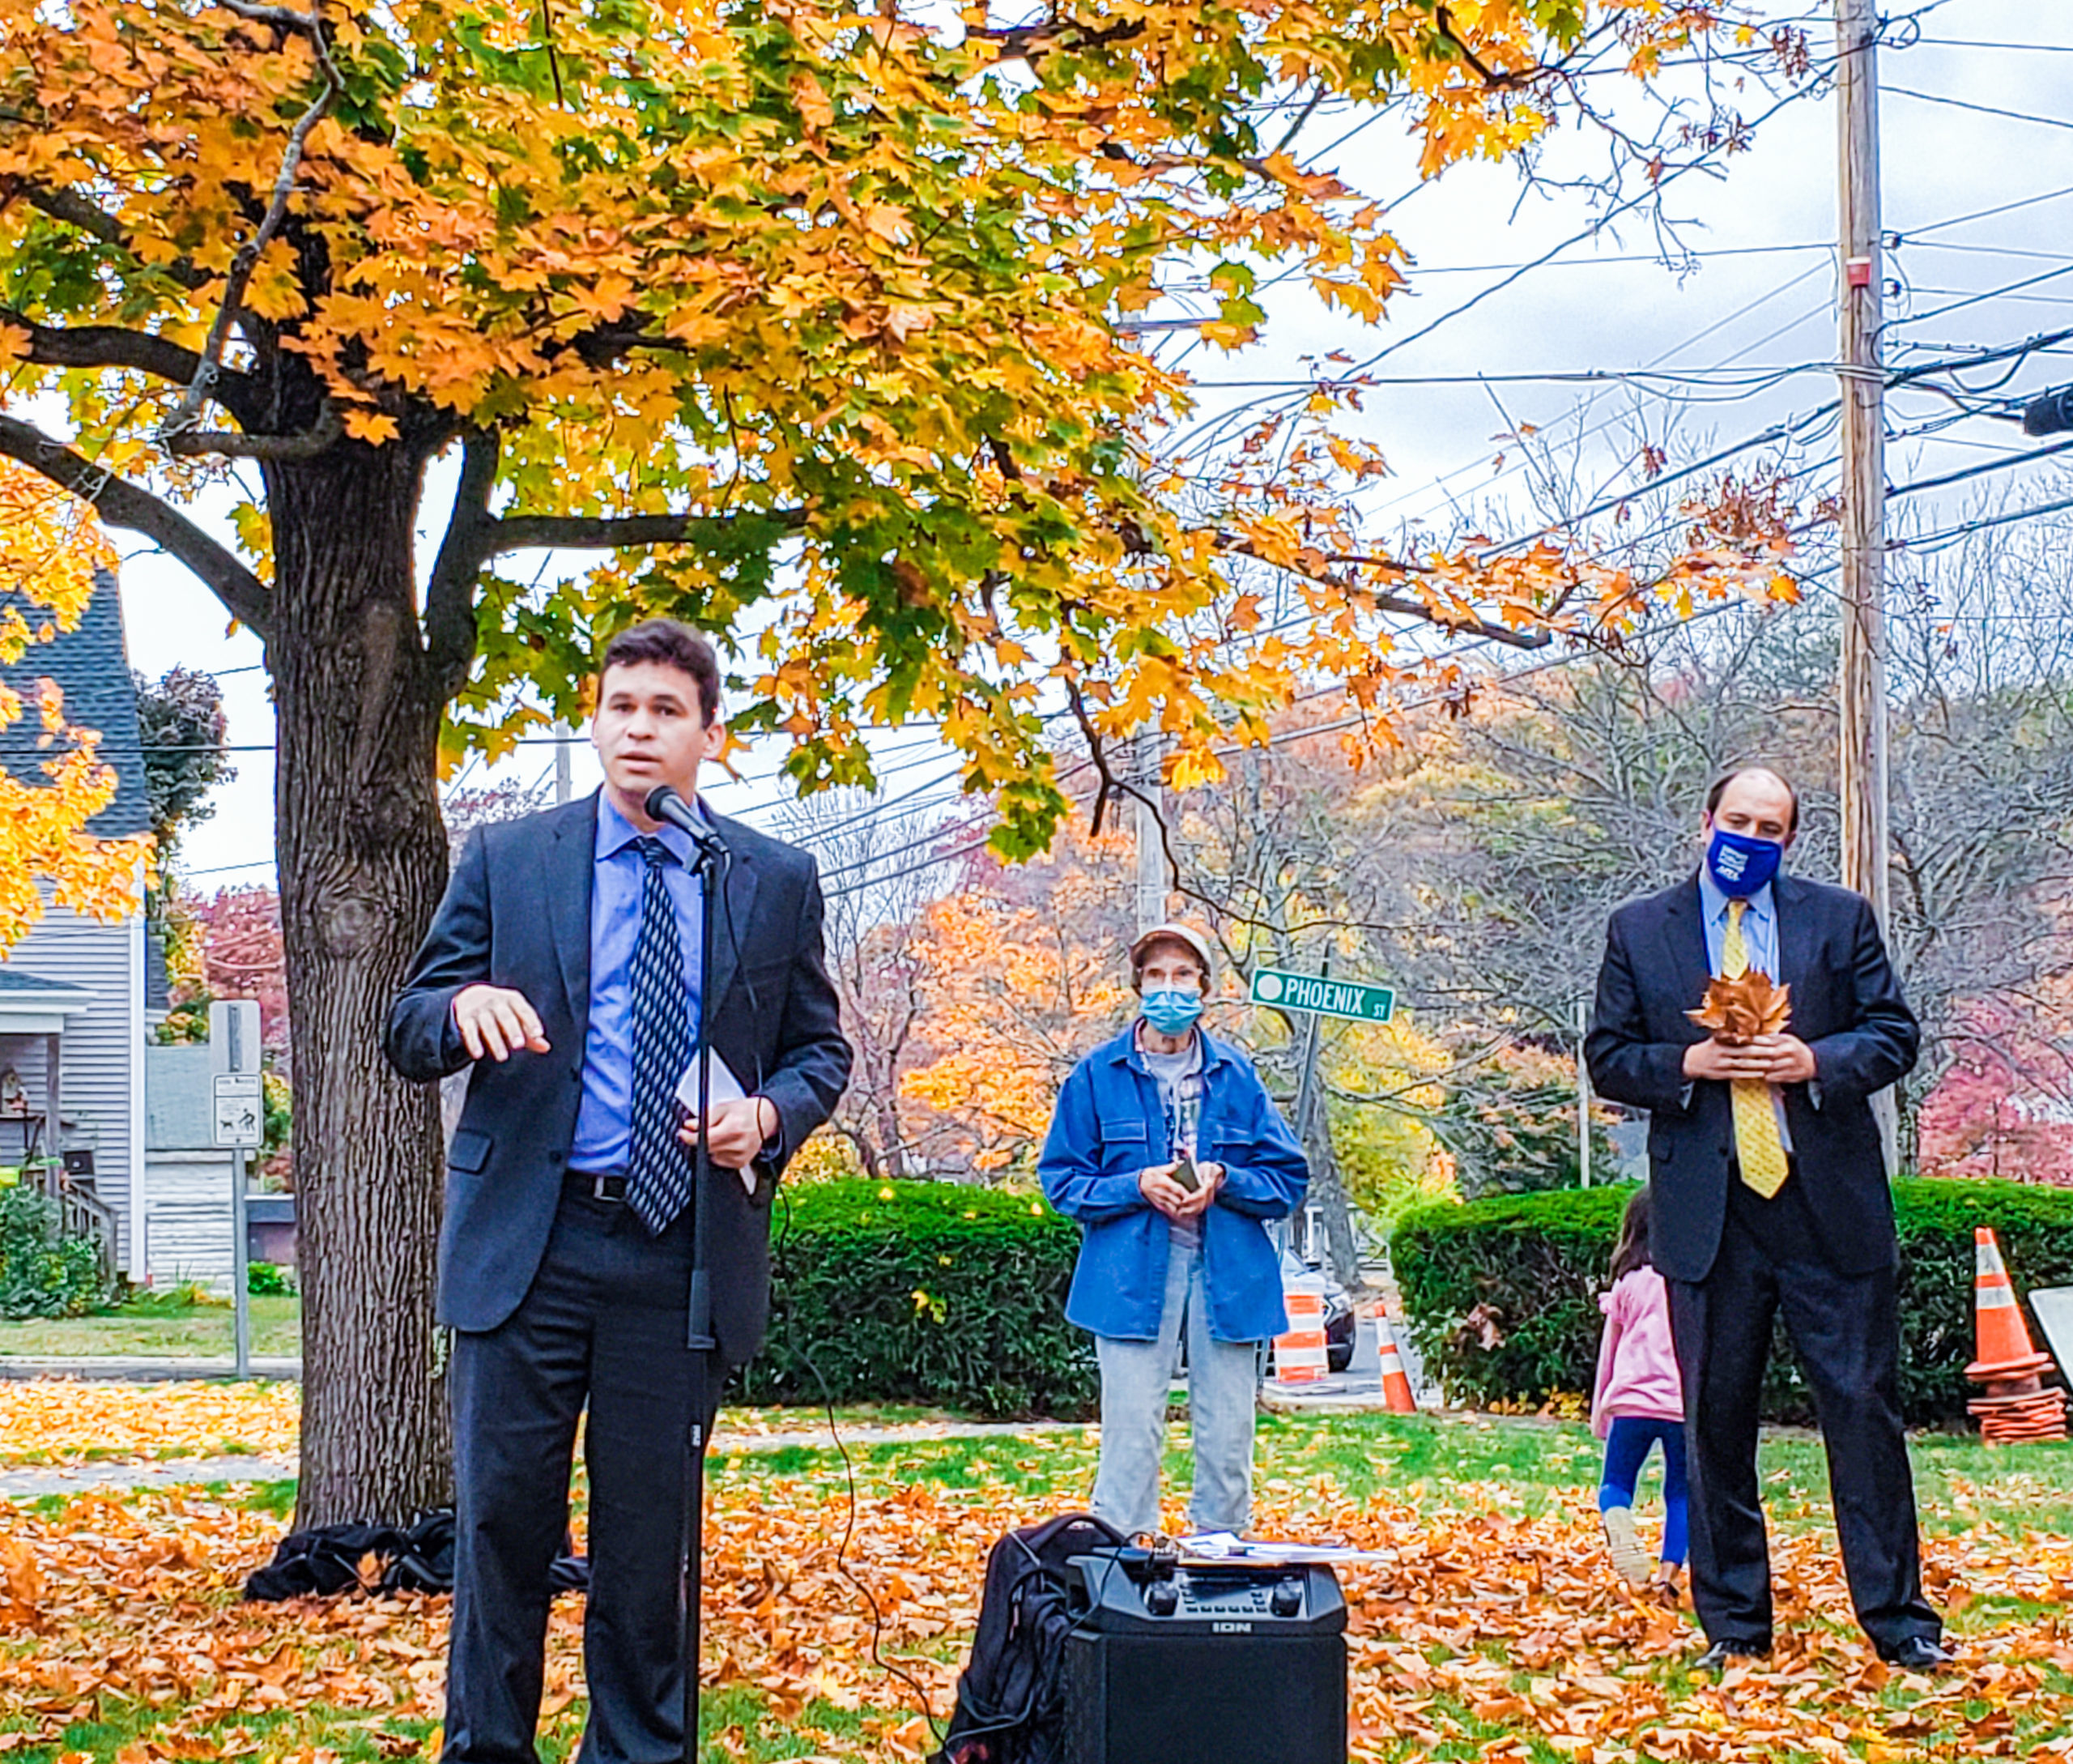 Rep. Sena speaks in Shirley, MA at a protest of mistreatment of people who are incarcerated at Souza-Baranowski Correctional Center